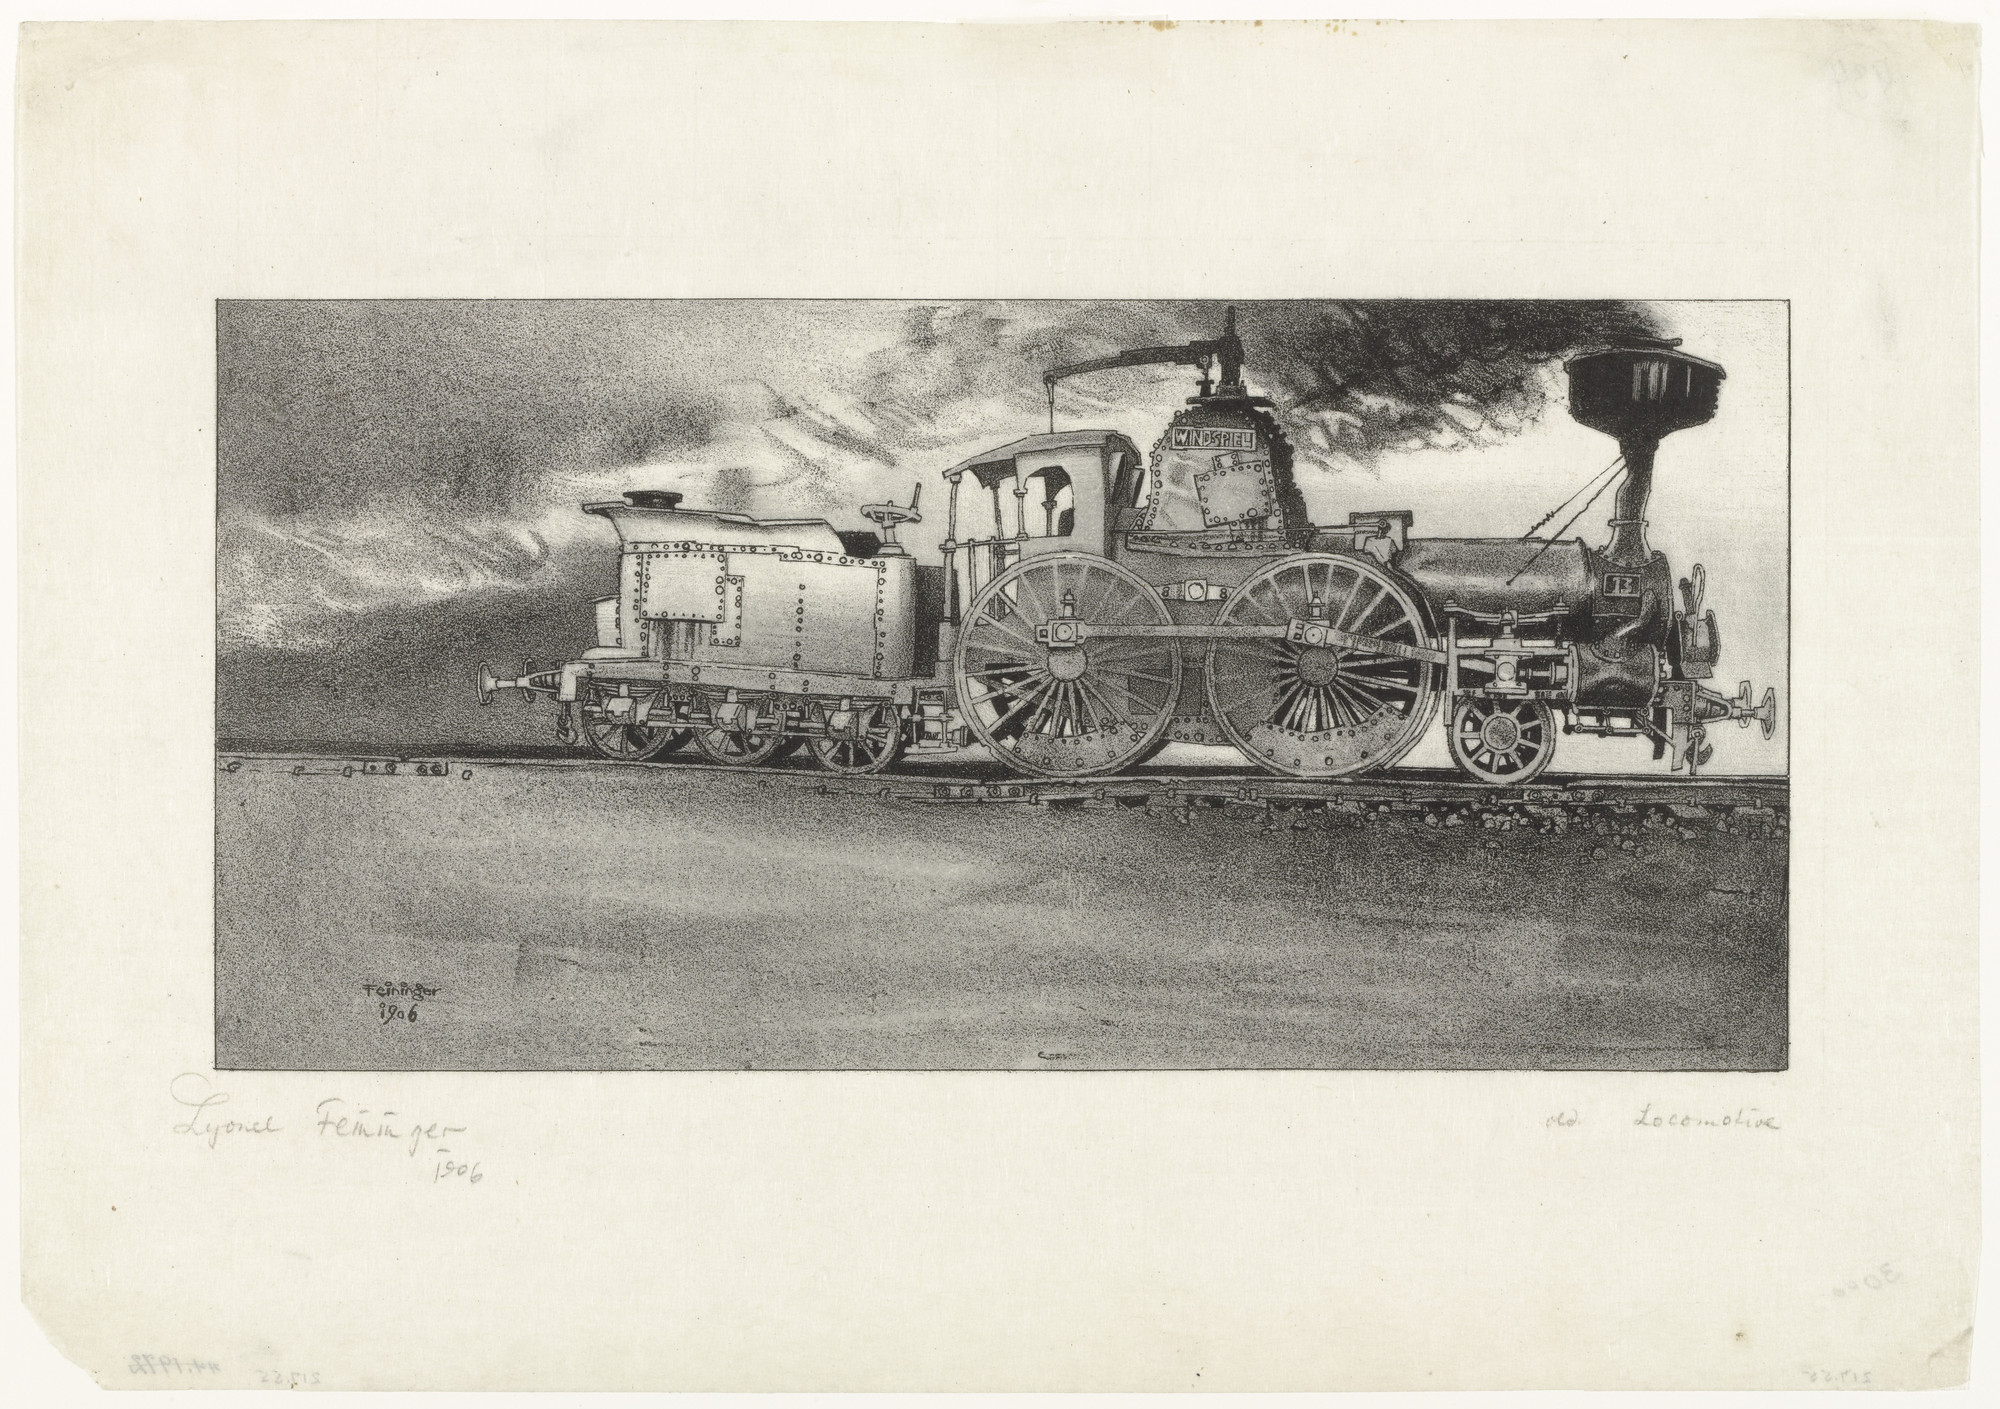 Lyonel Feininger. The Old Locomotive. 1906